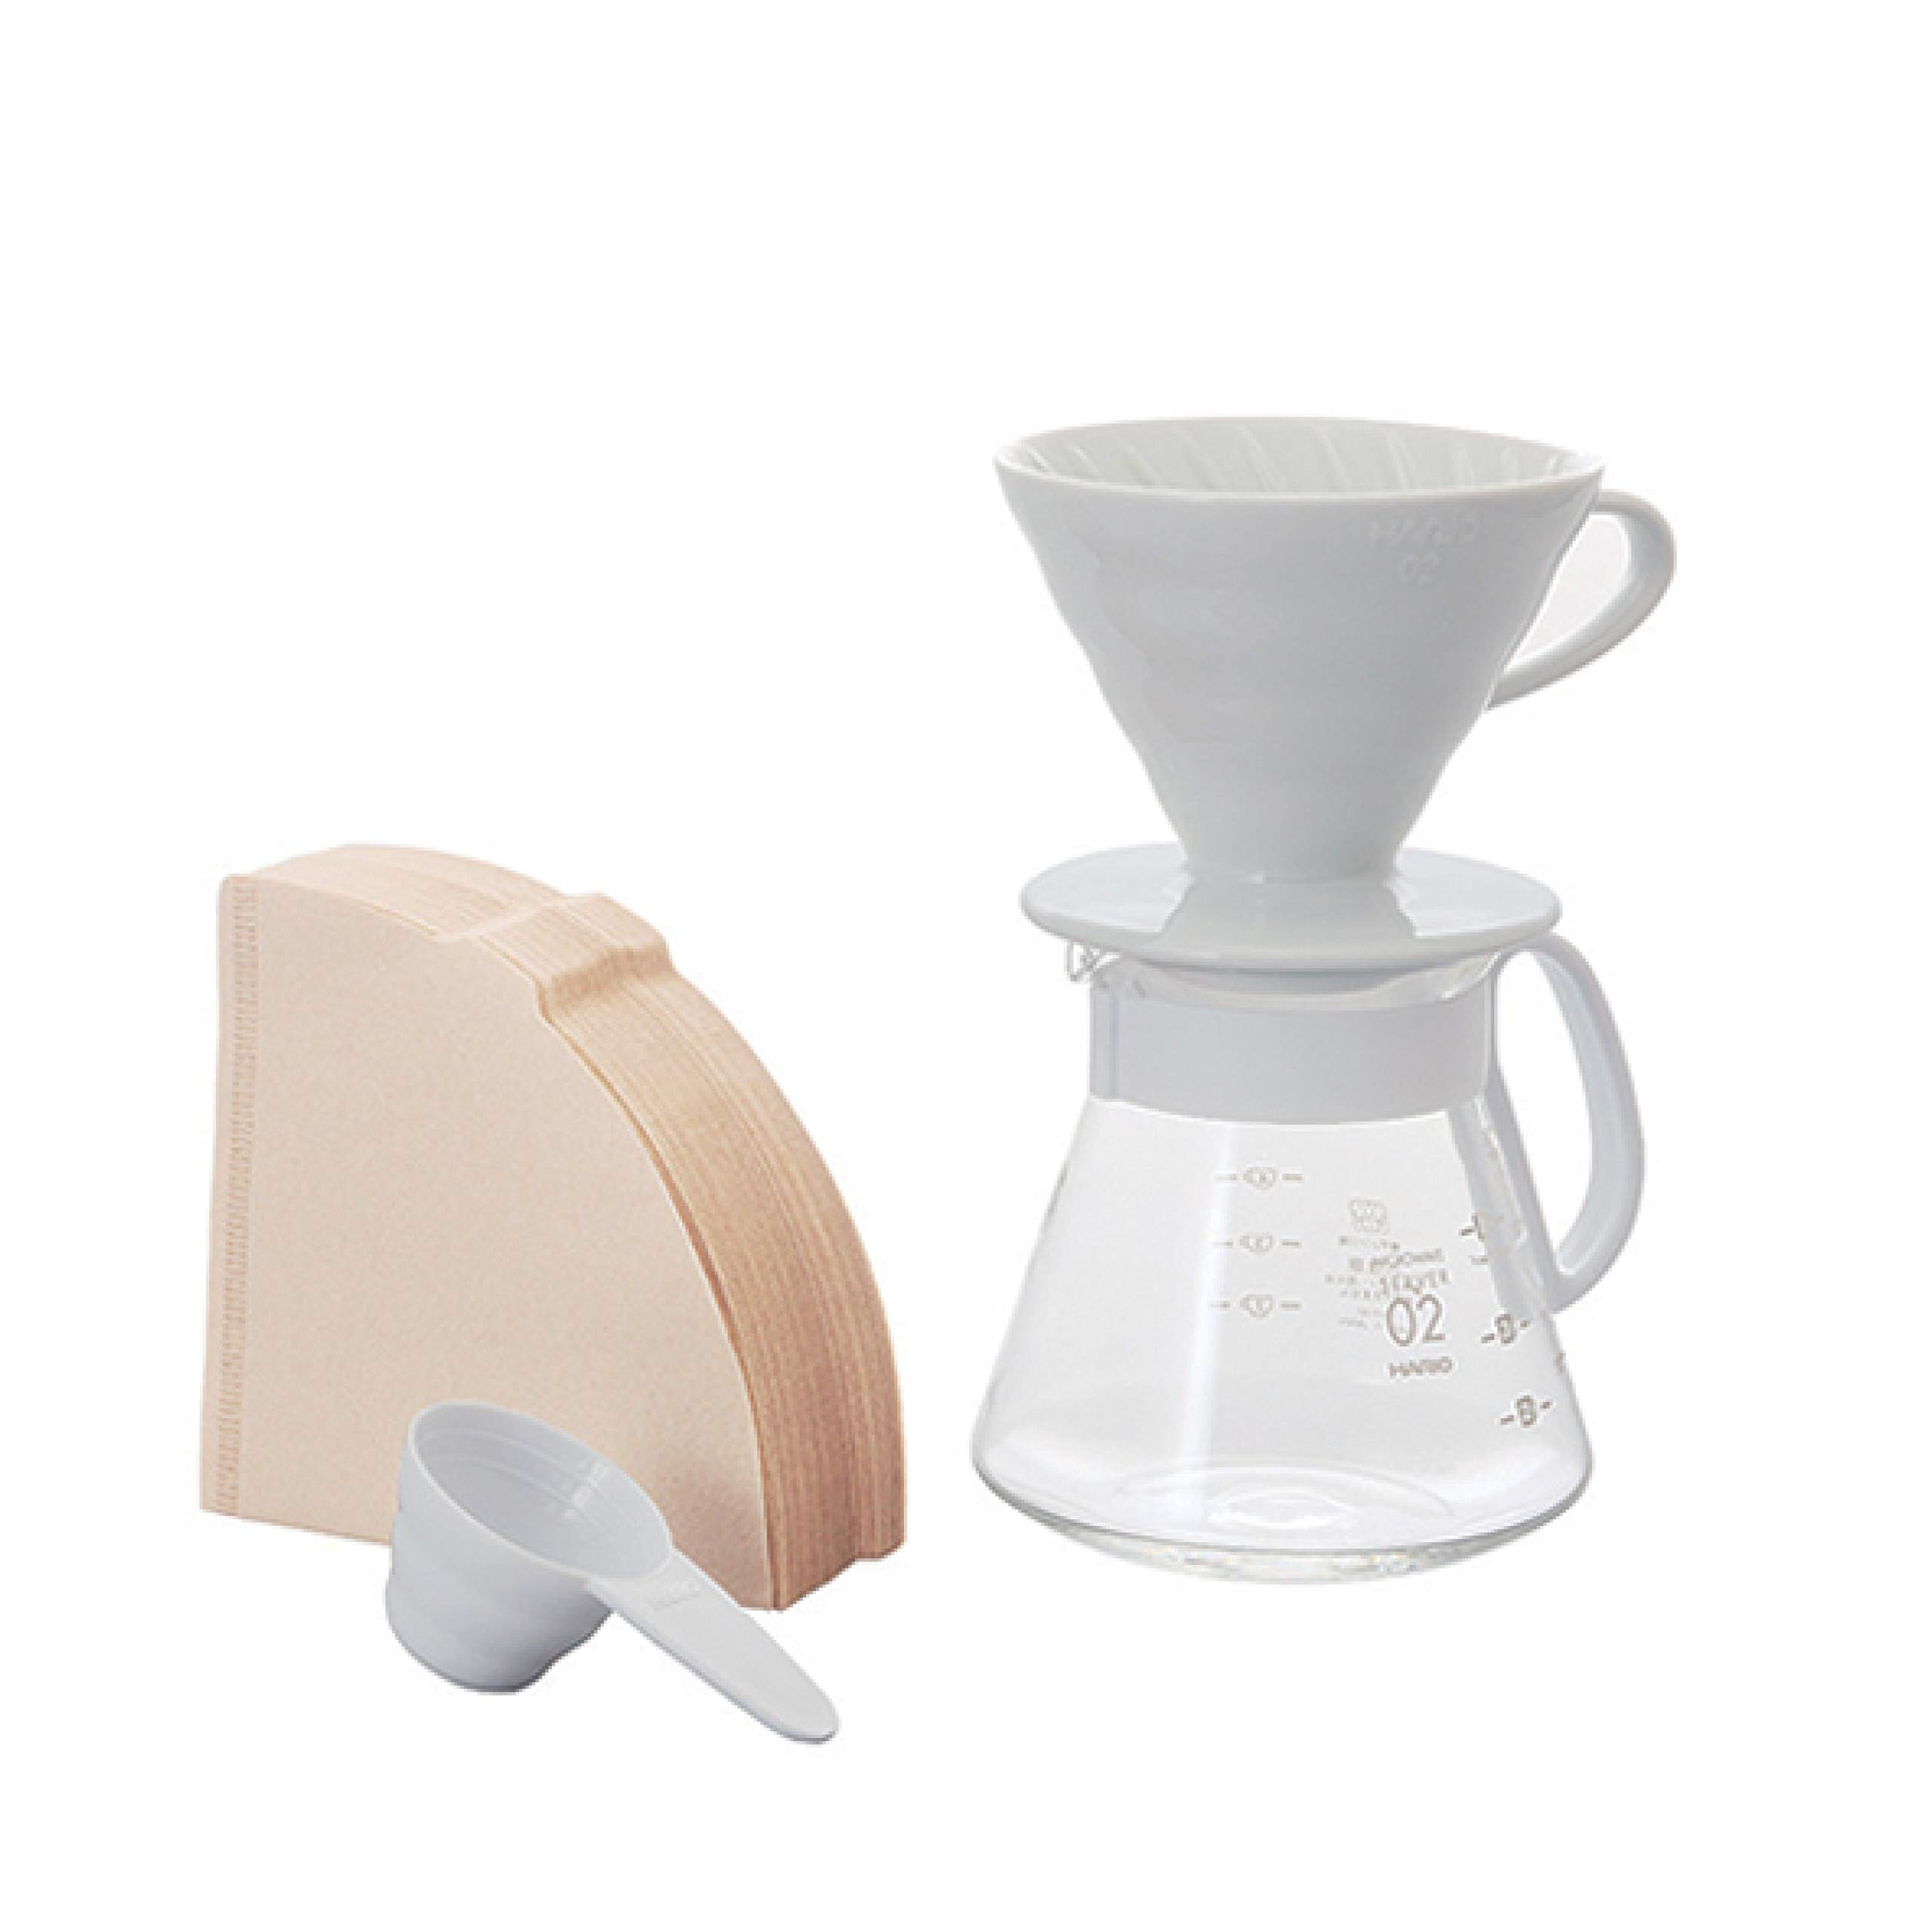 Hario V60 Size 02 Pour Over Set with Ceramic Dripper, Glass Server, Scoop and Filters, White by Hario